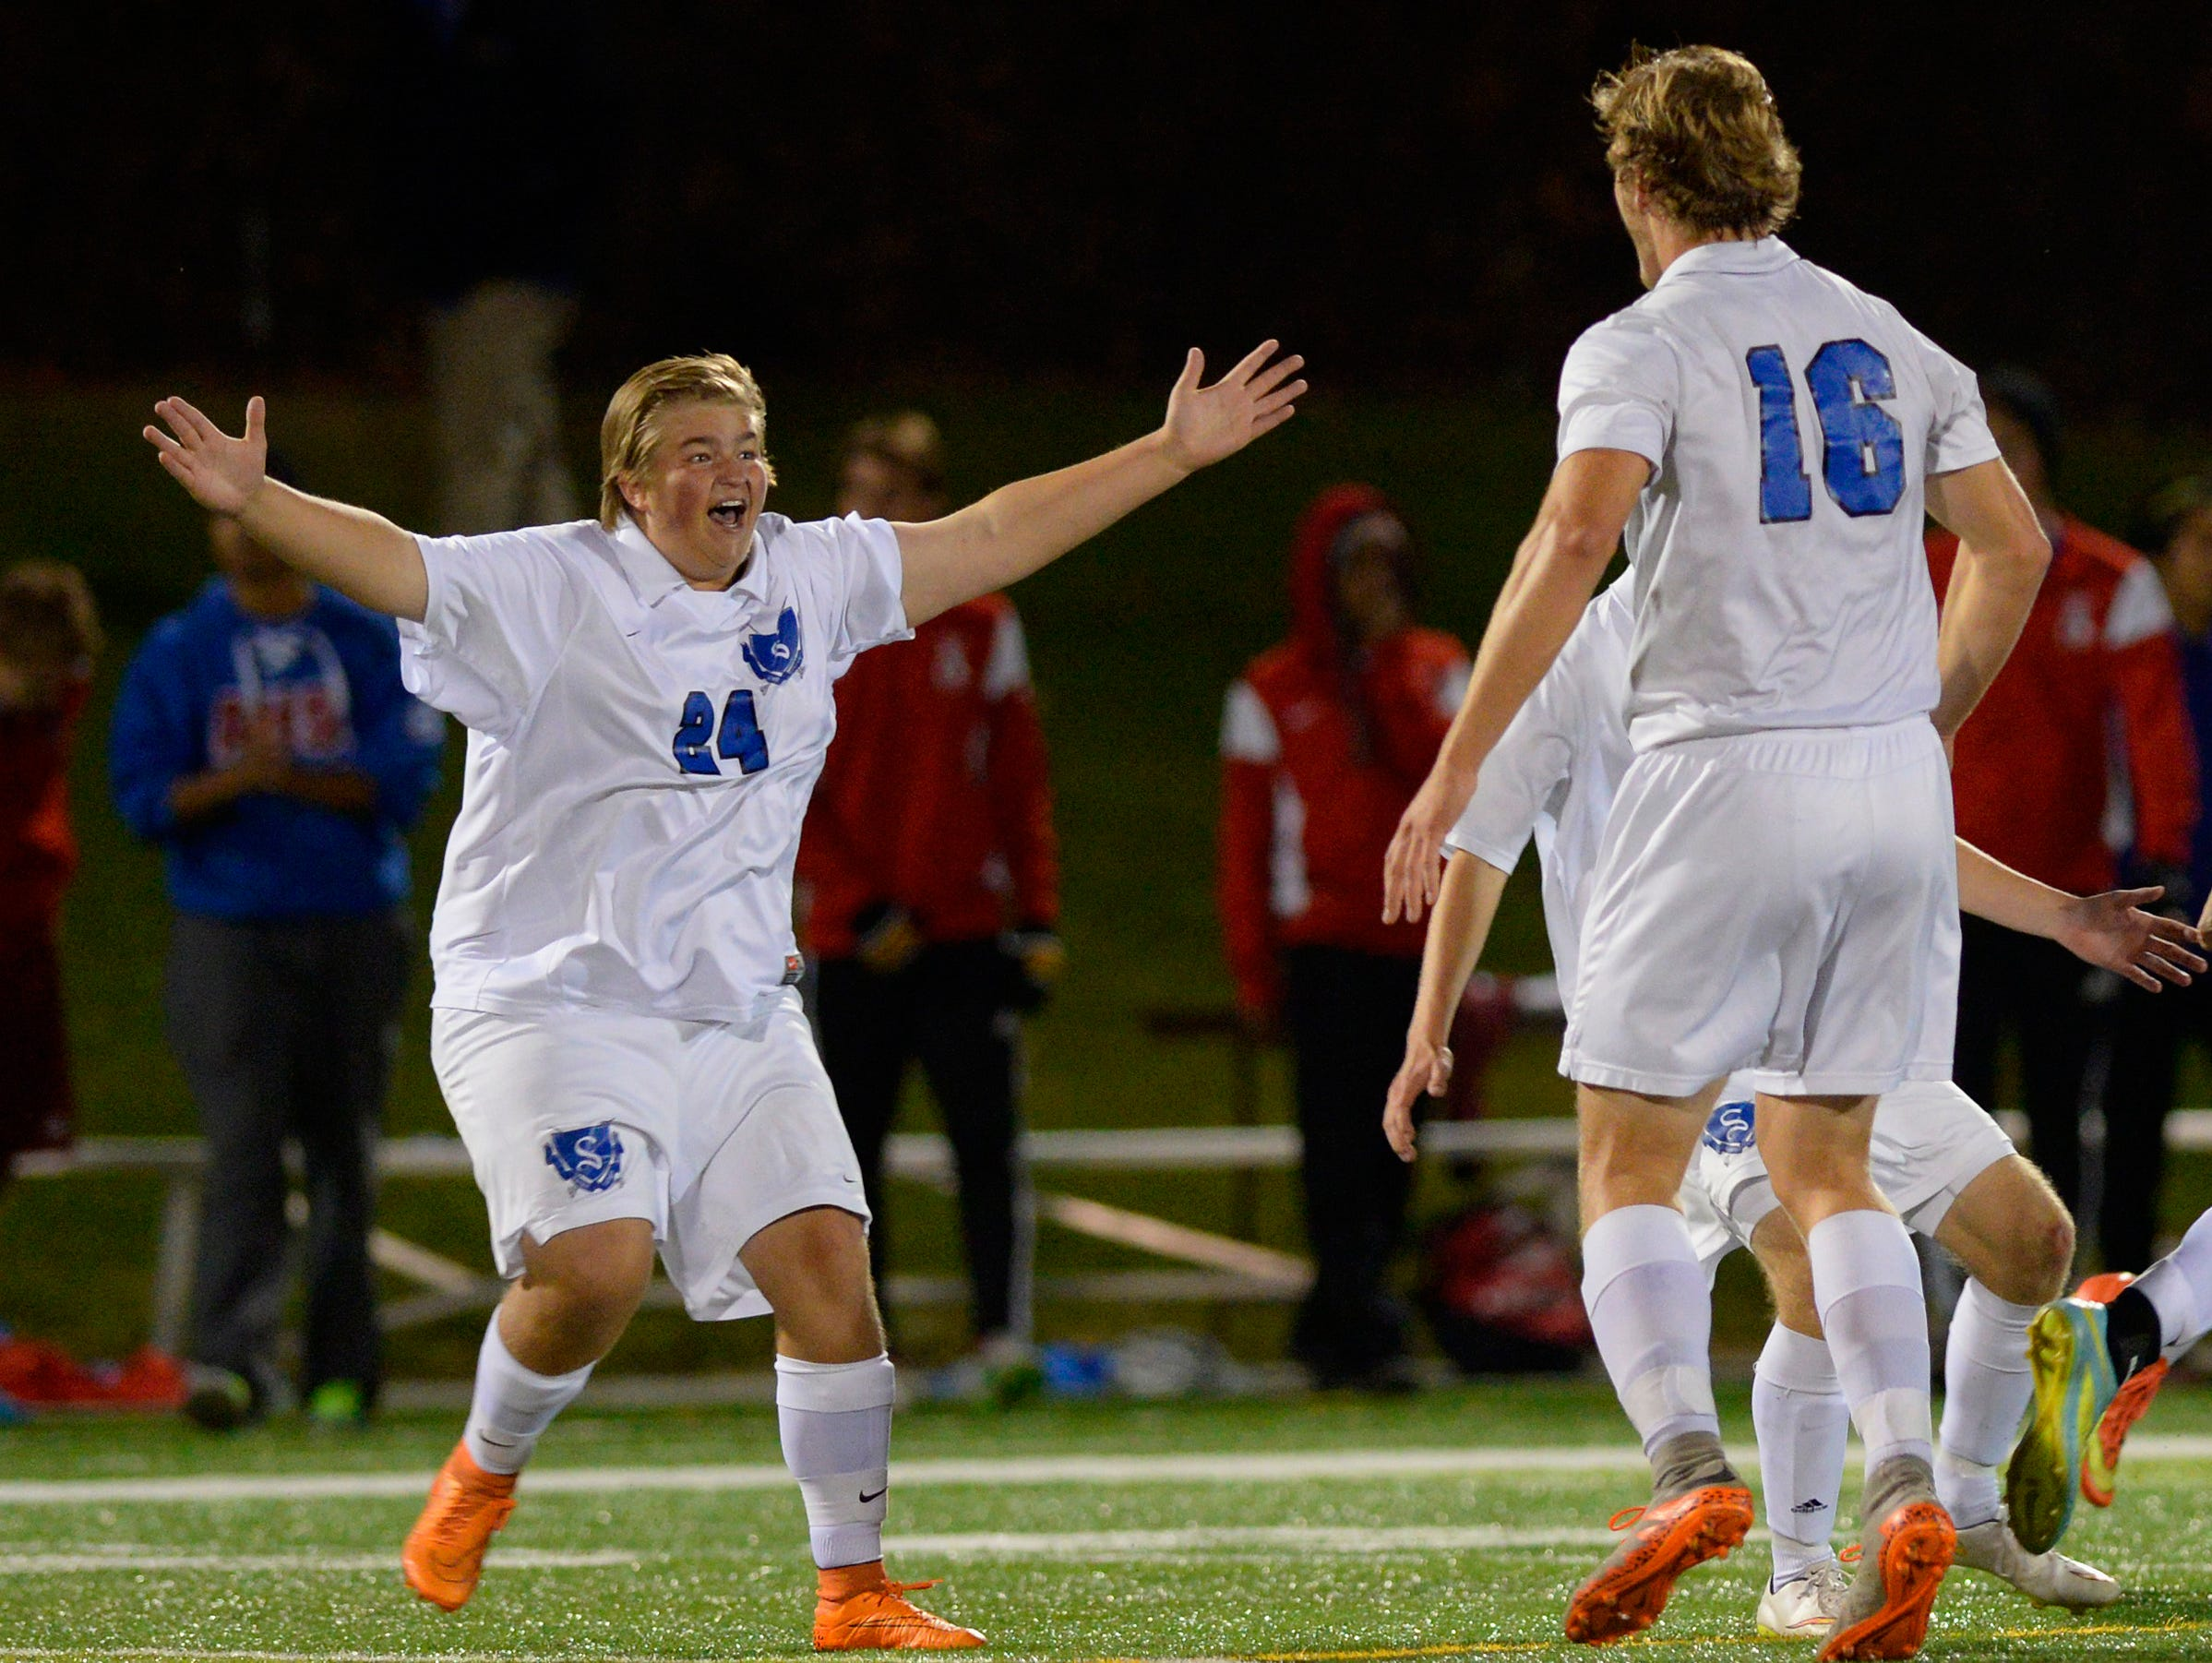 Sartell's Trevor Erickson (24) and Ethan Kiffmeyer (16) celebrate their 2-1 win in their Sect. 8A championship game against St. Cloud ApolloThursday, Oct. 22 at Husky Stadium. Sartell secured a state tournament appearance with the win.